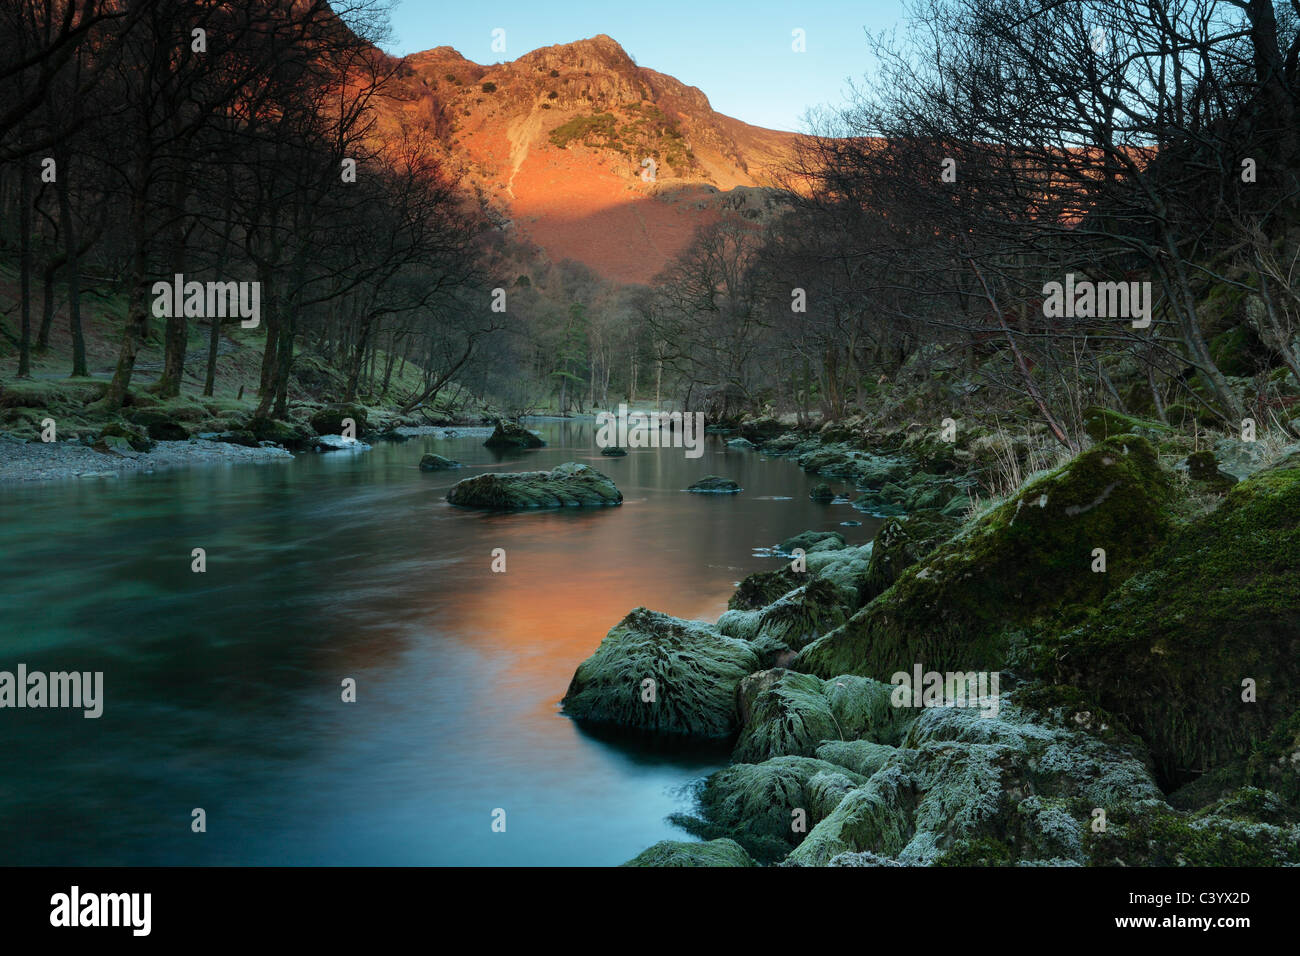 Alpenglow on High Crags is reflected in the River Derwent as seen near Rosthwaite in the Lake District of England - Stock Image